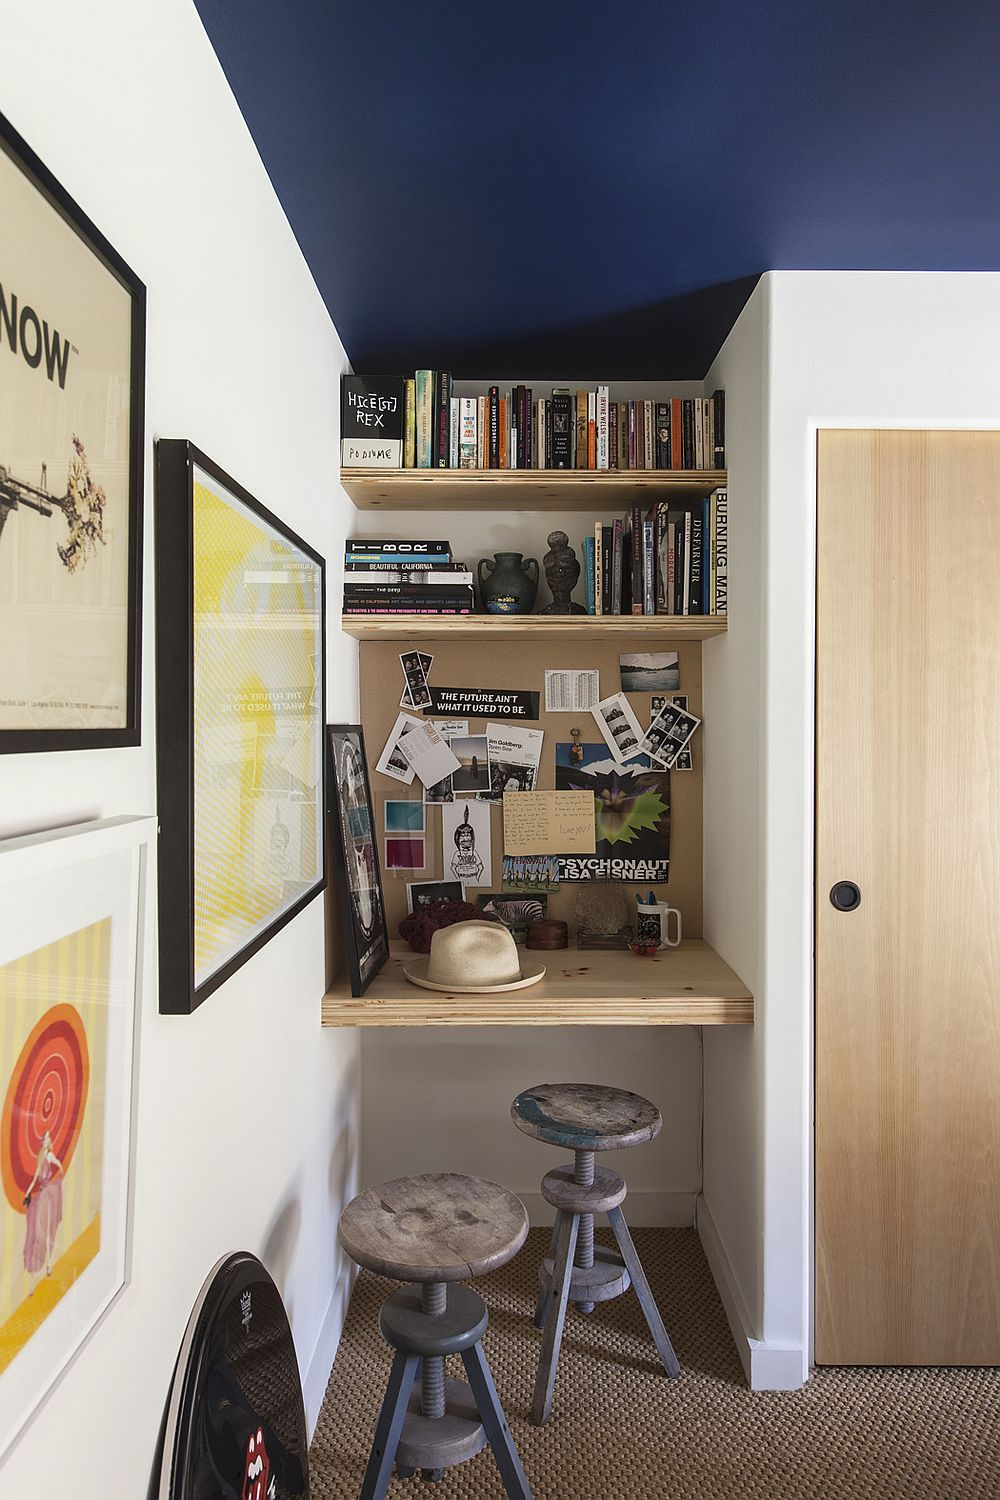 Small DIY home workspace idea in the bedroom niche crafted using just a wooden plank